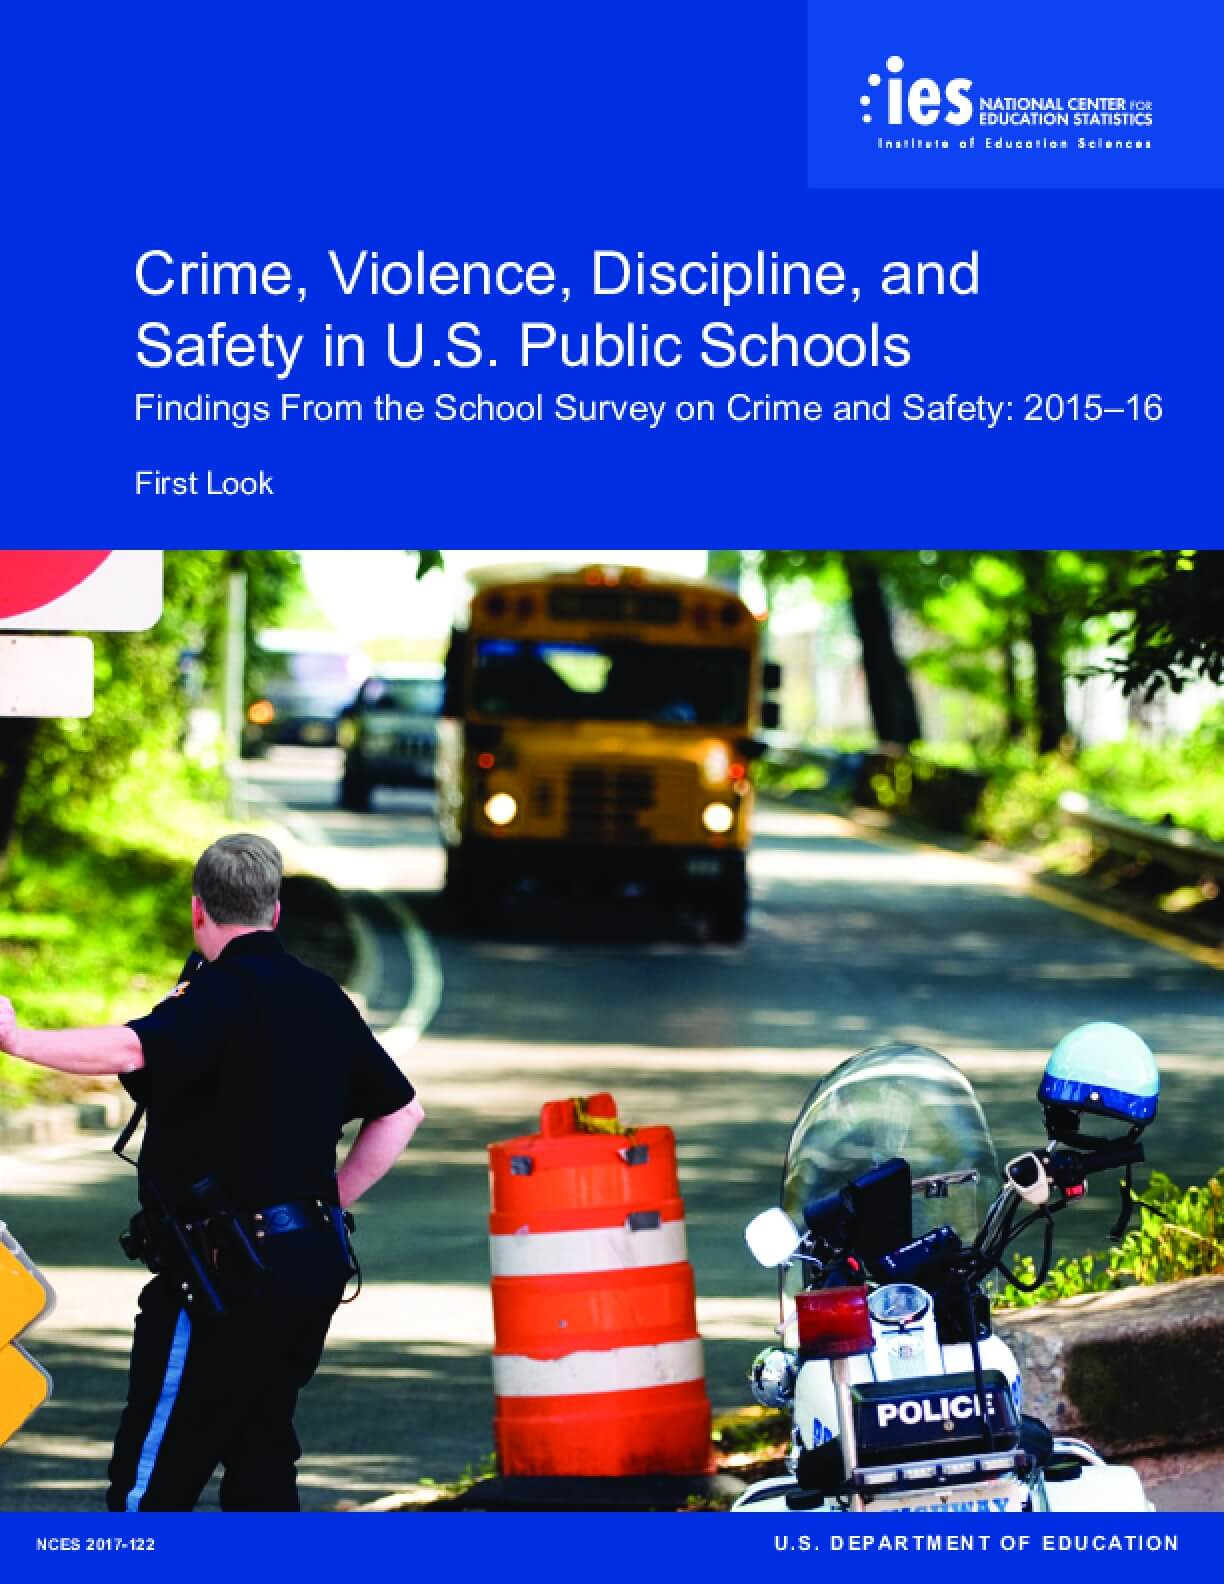 Crime, Violence, Discipline, and Safety in U.S. Public Schools: Findings from the School Survey on Crime and Safety - 2015-16